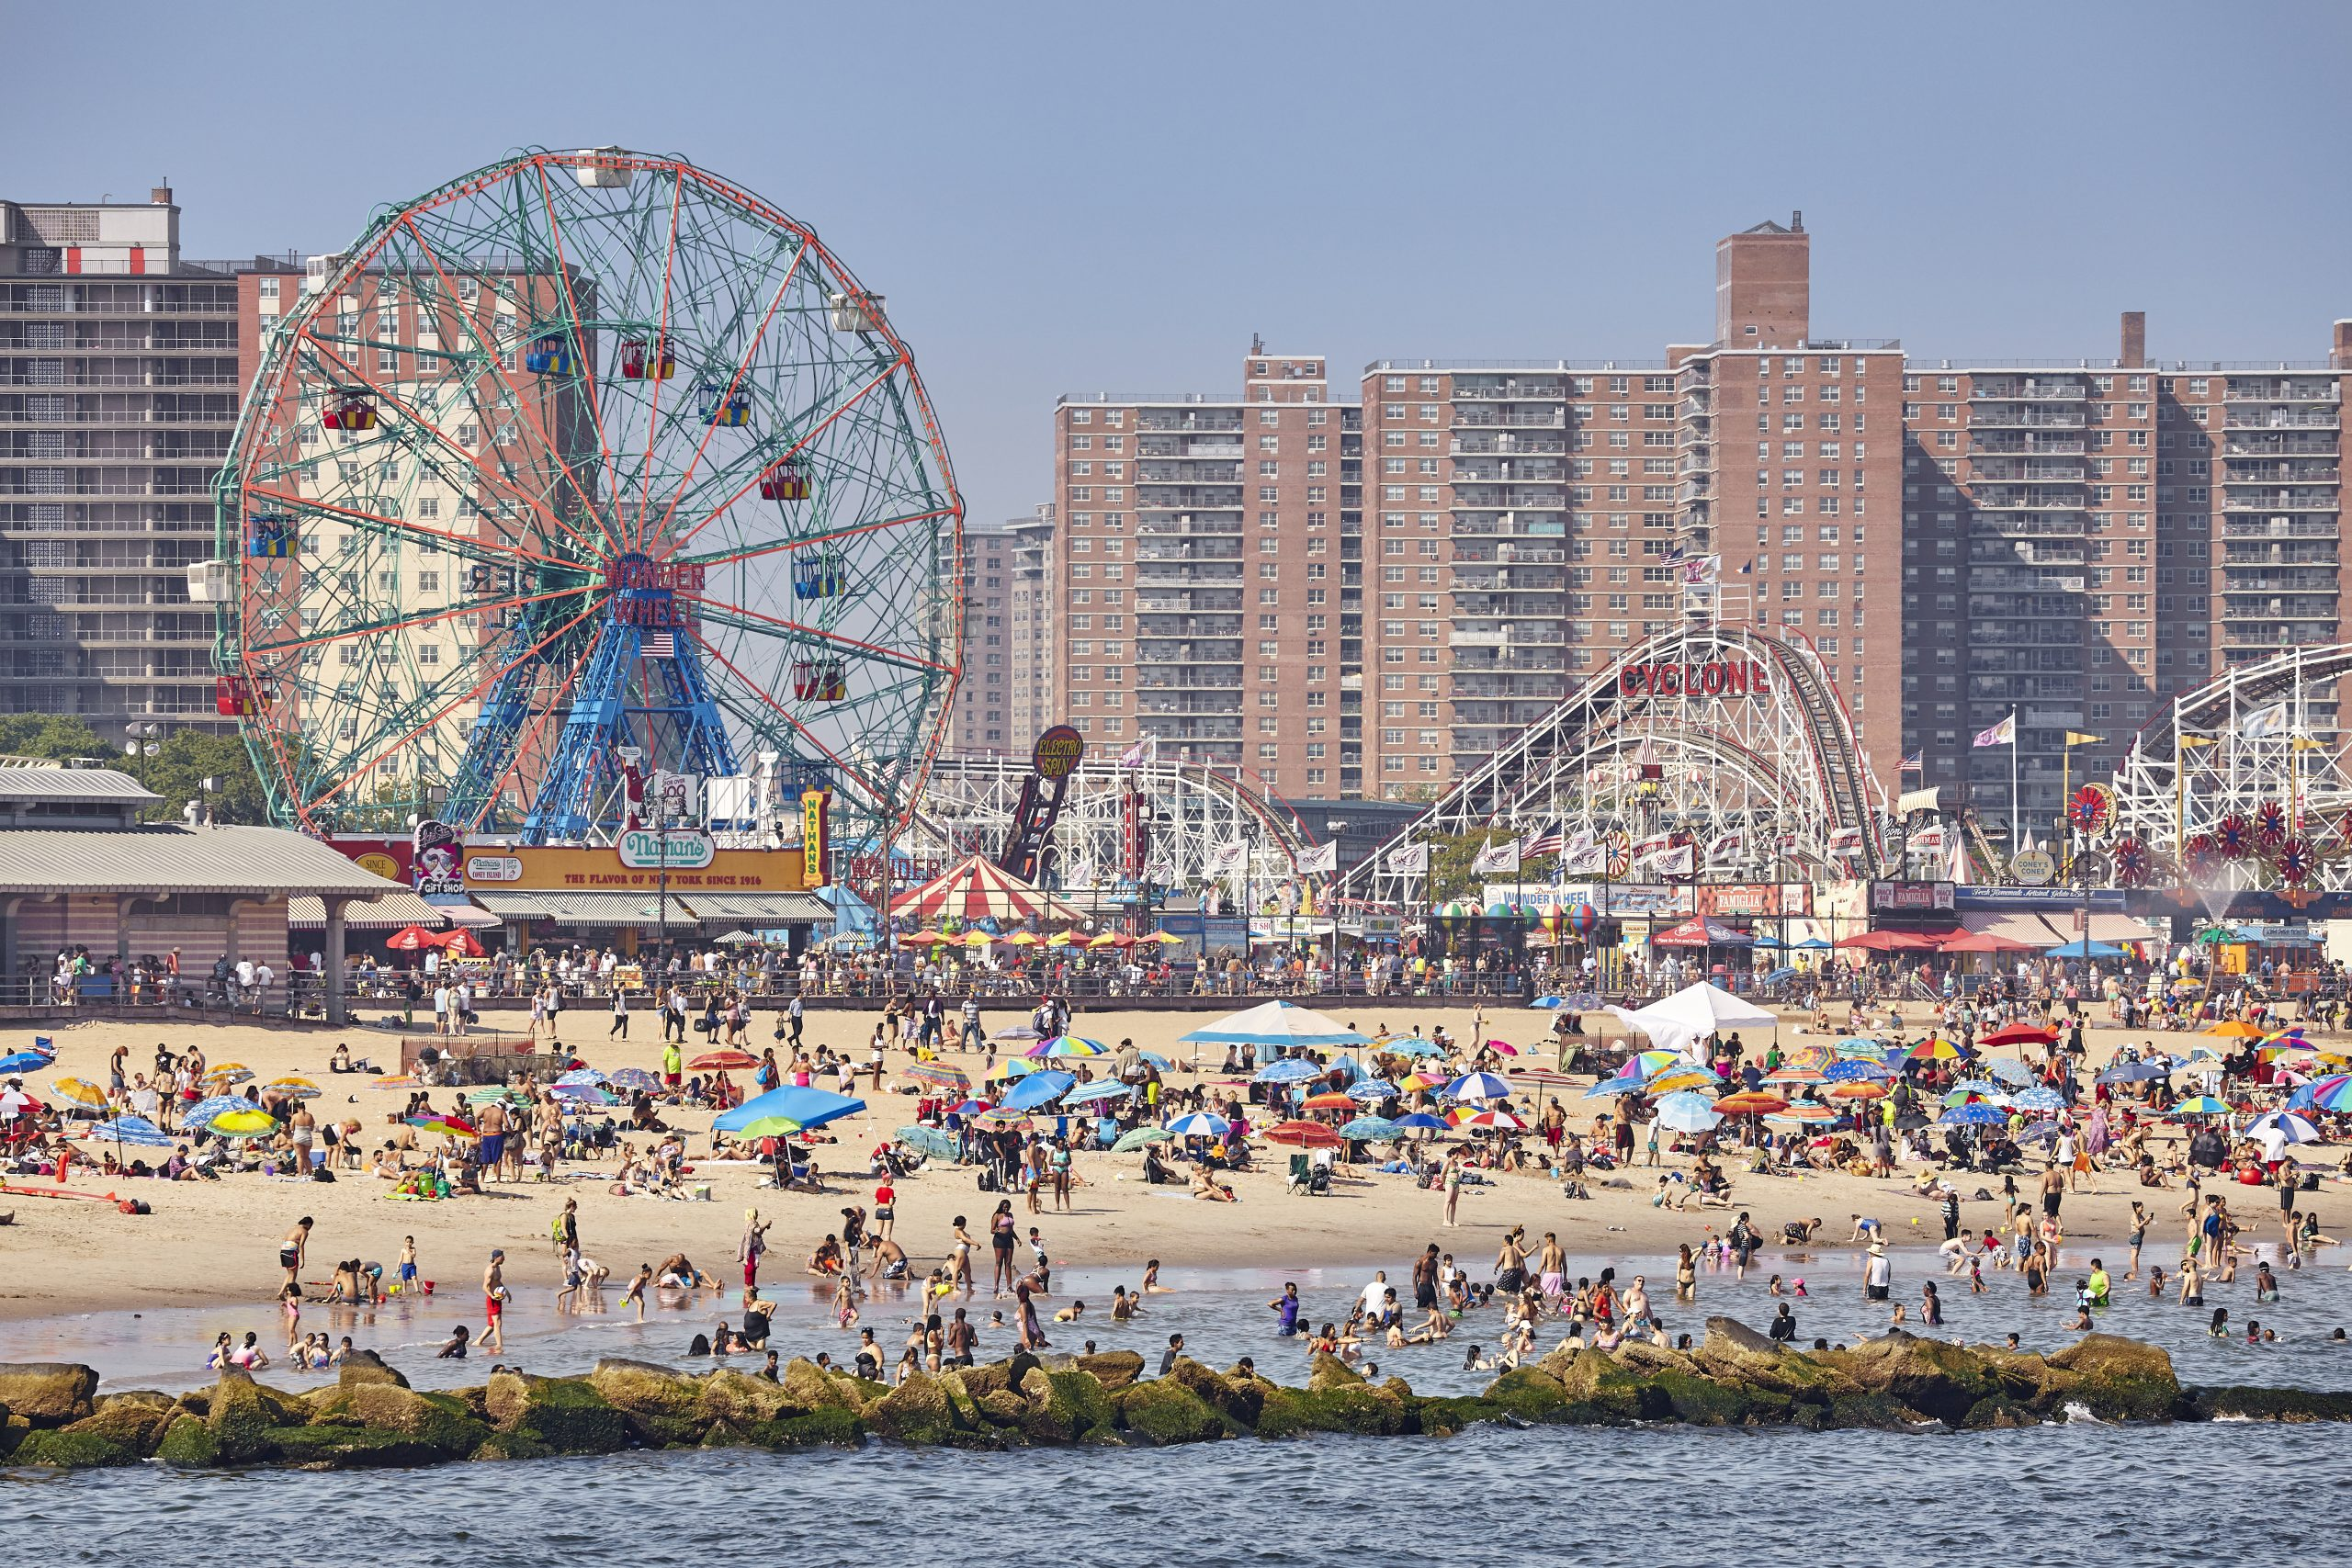 Coney Island beach and Luna Park. things to do brooklyn ny. what to do brooklyn? places to visit in brooklyn